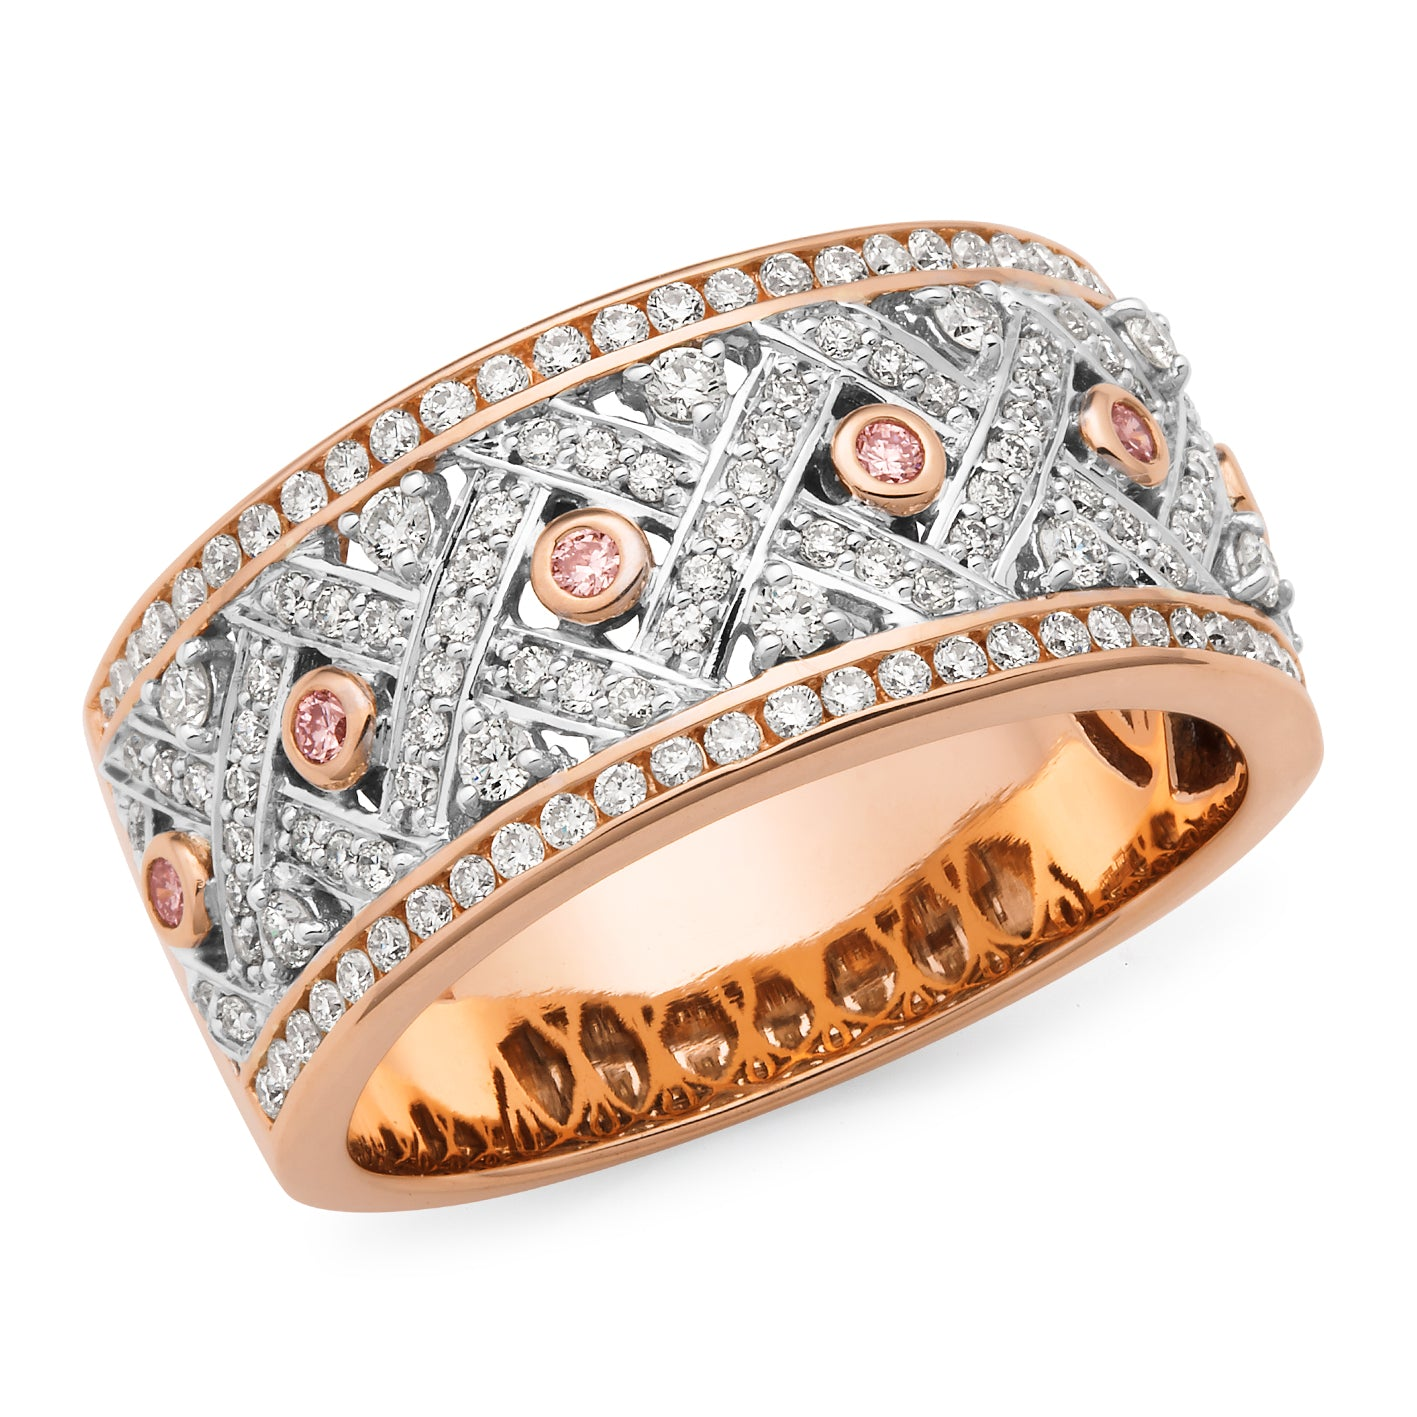 MMJ - Pink Diamond Dress Ring